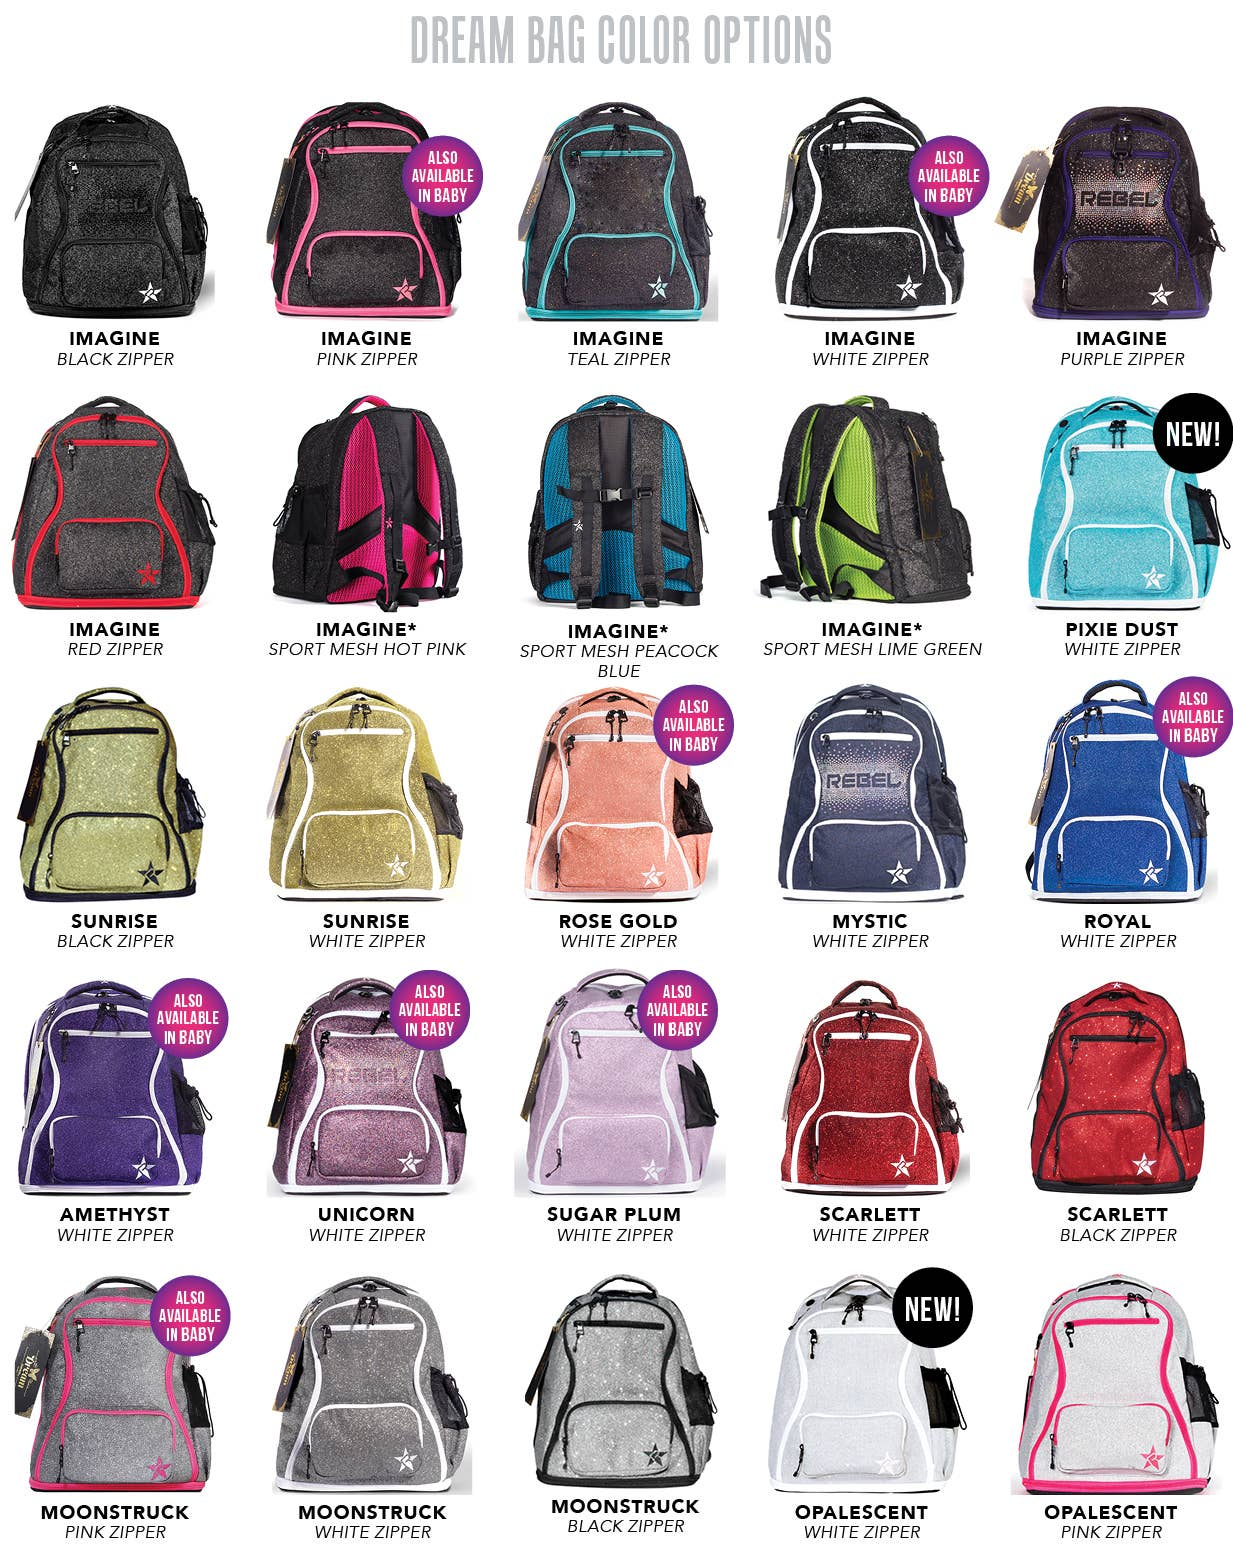 dream bag color options